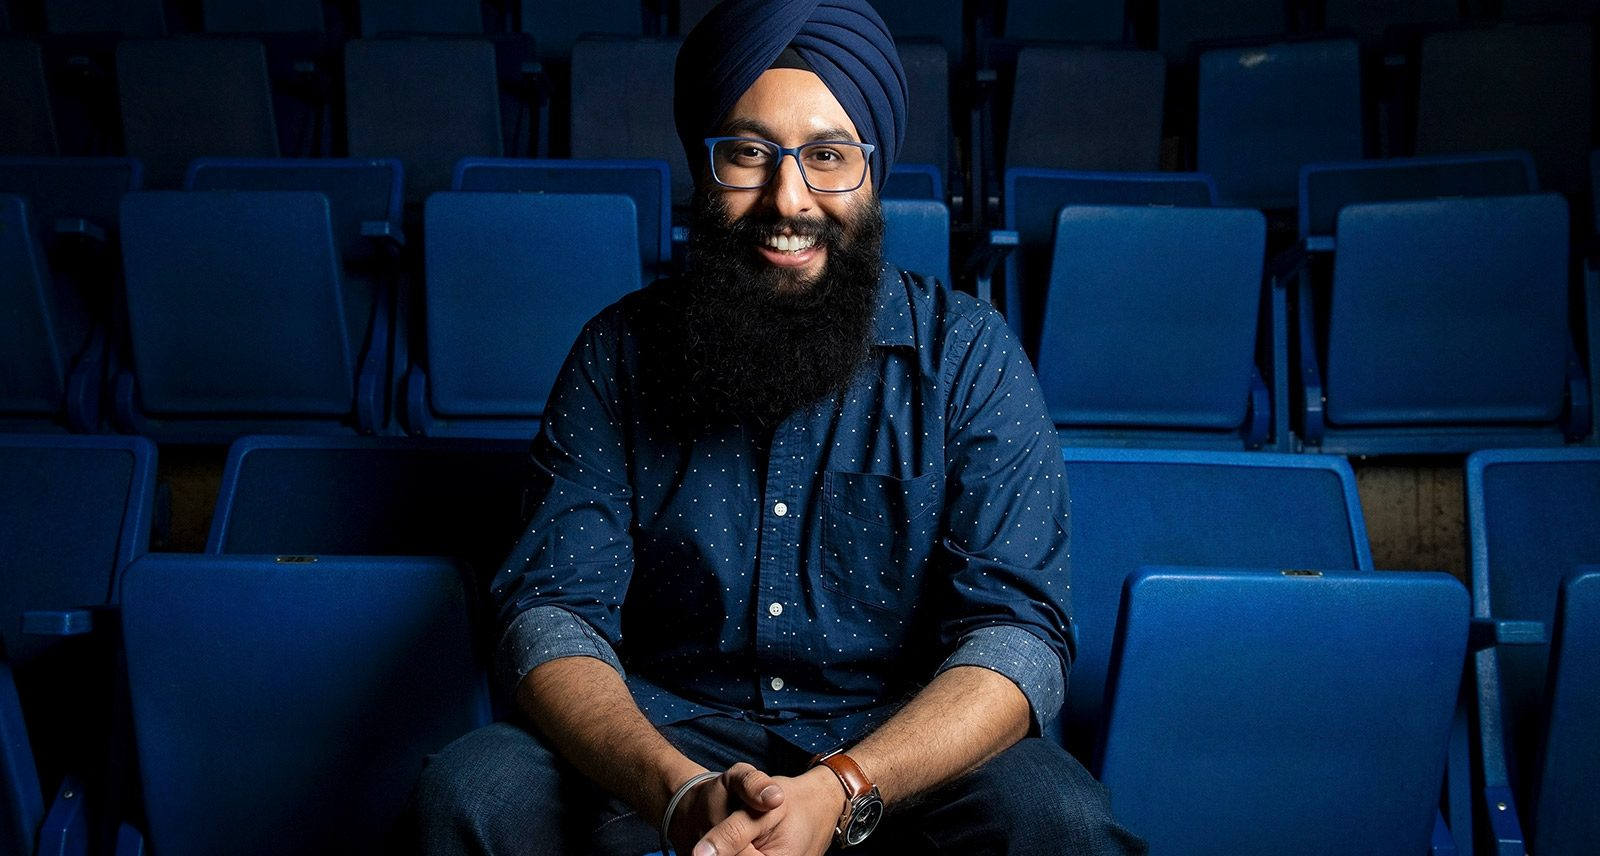 Harnarayan Singh on His New Memoir, His History-Making Career and Why Representation in Sports Matters